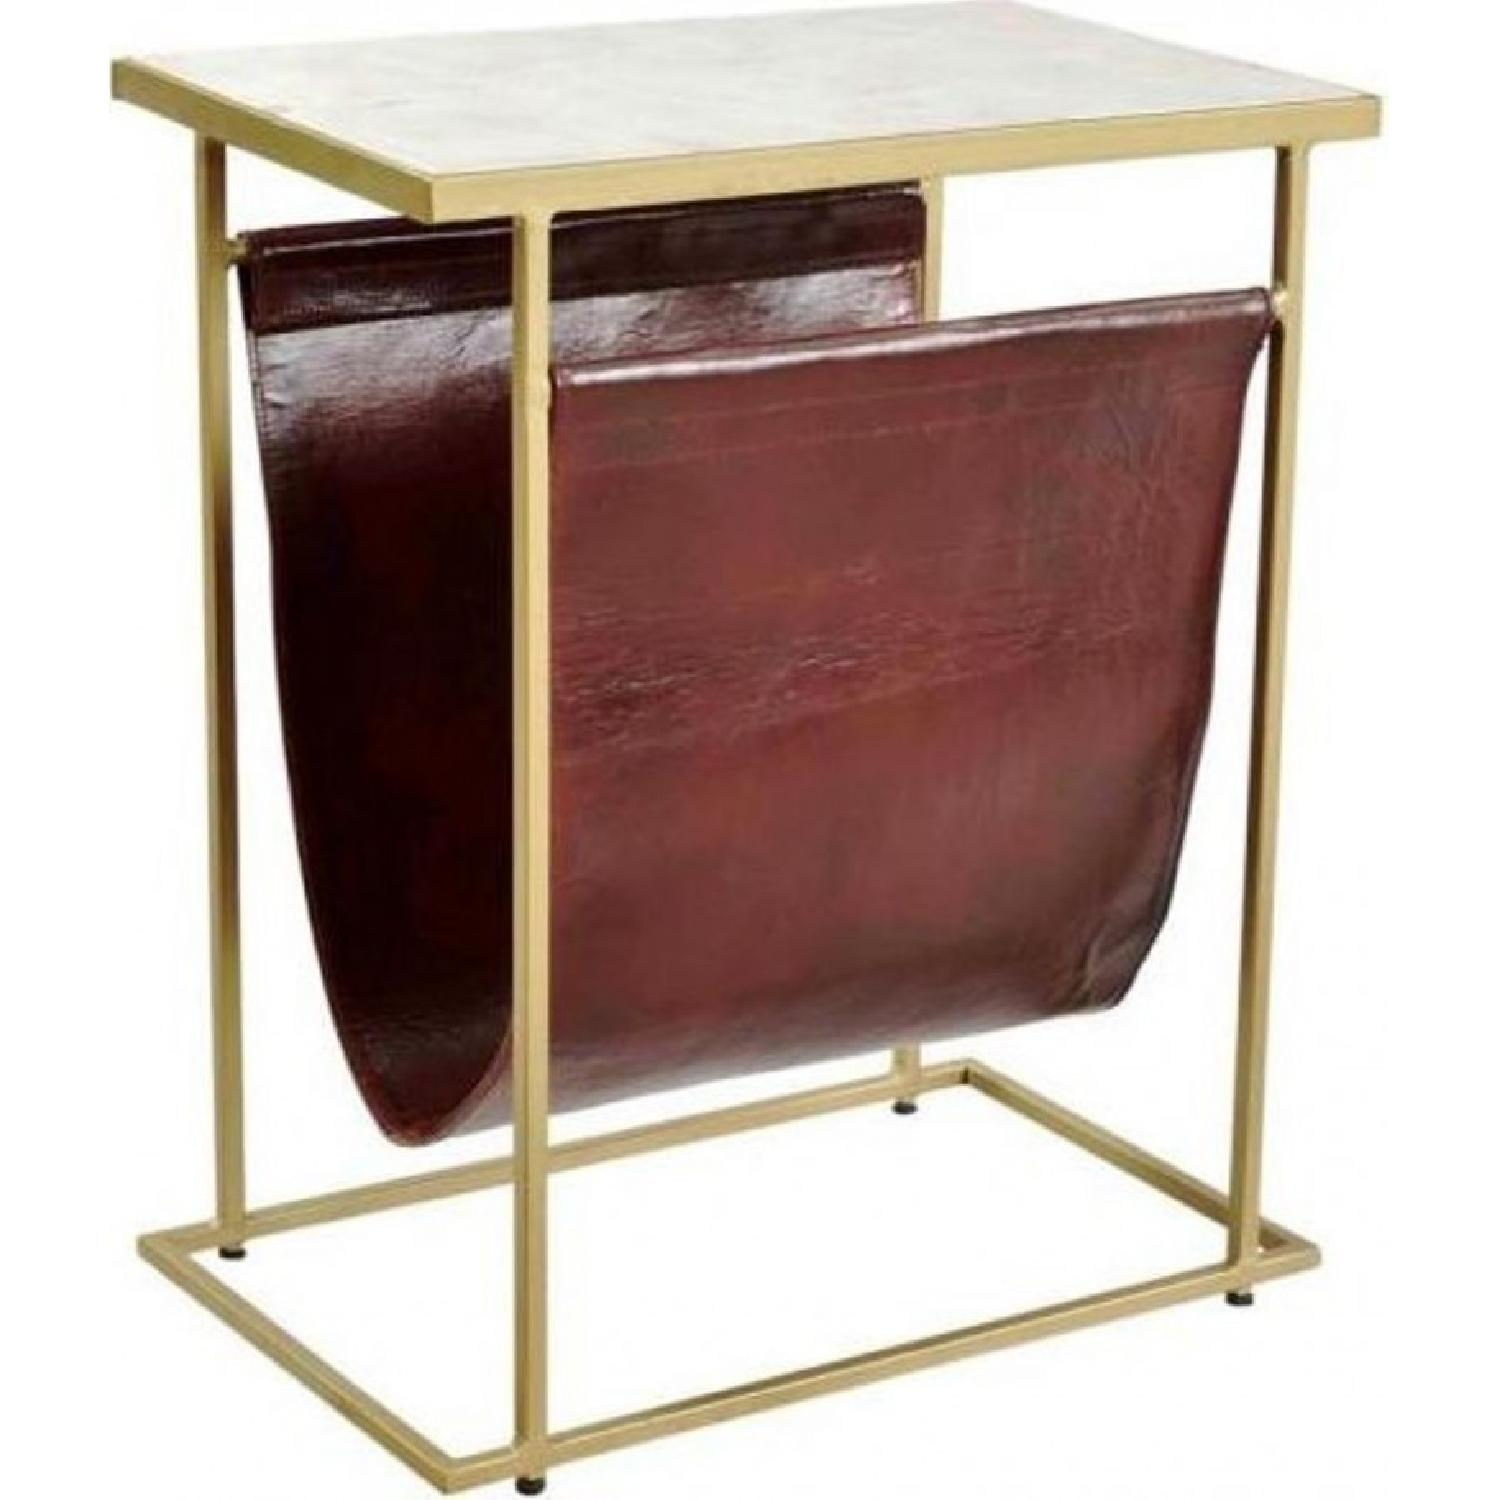 End Table w/ Marble Top & Brass Finish Legs & Leather Pouch - image-2